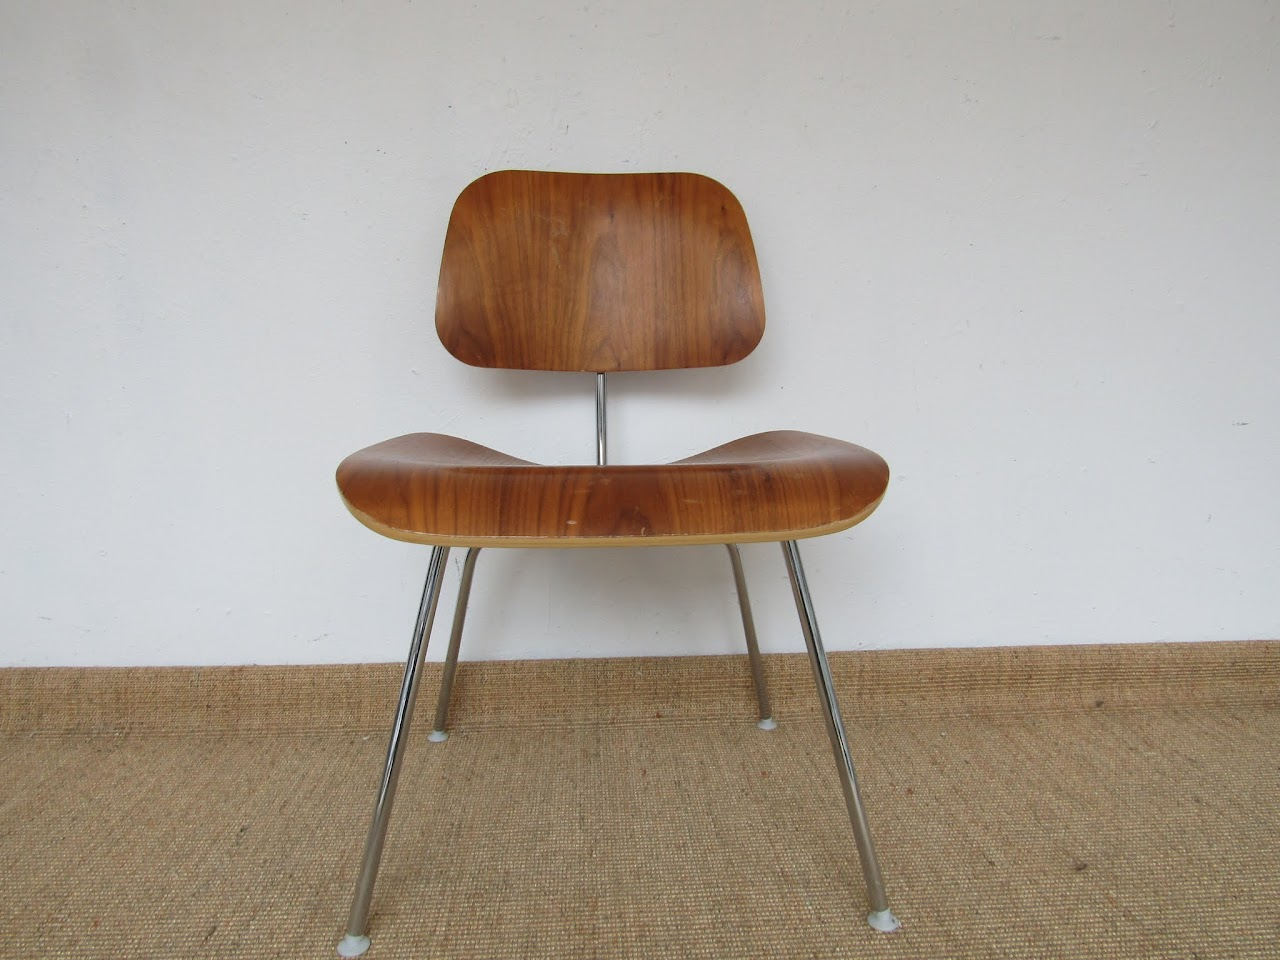 Eames Molded Plywood Single Chair